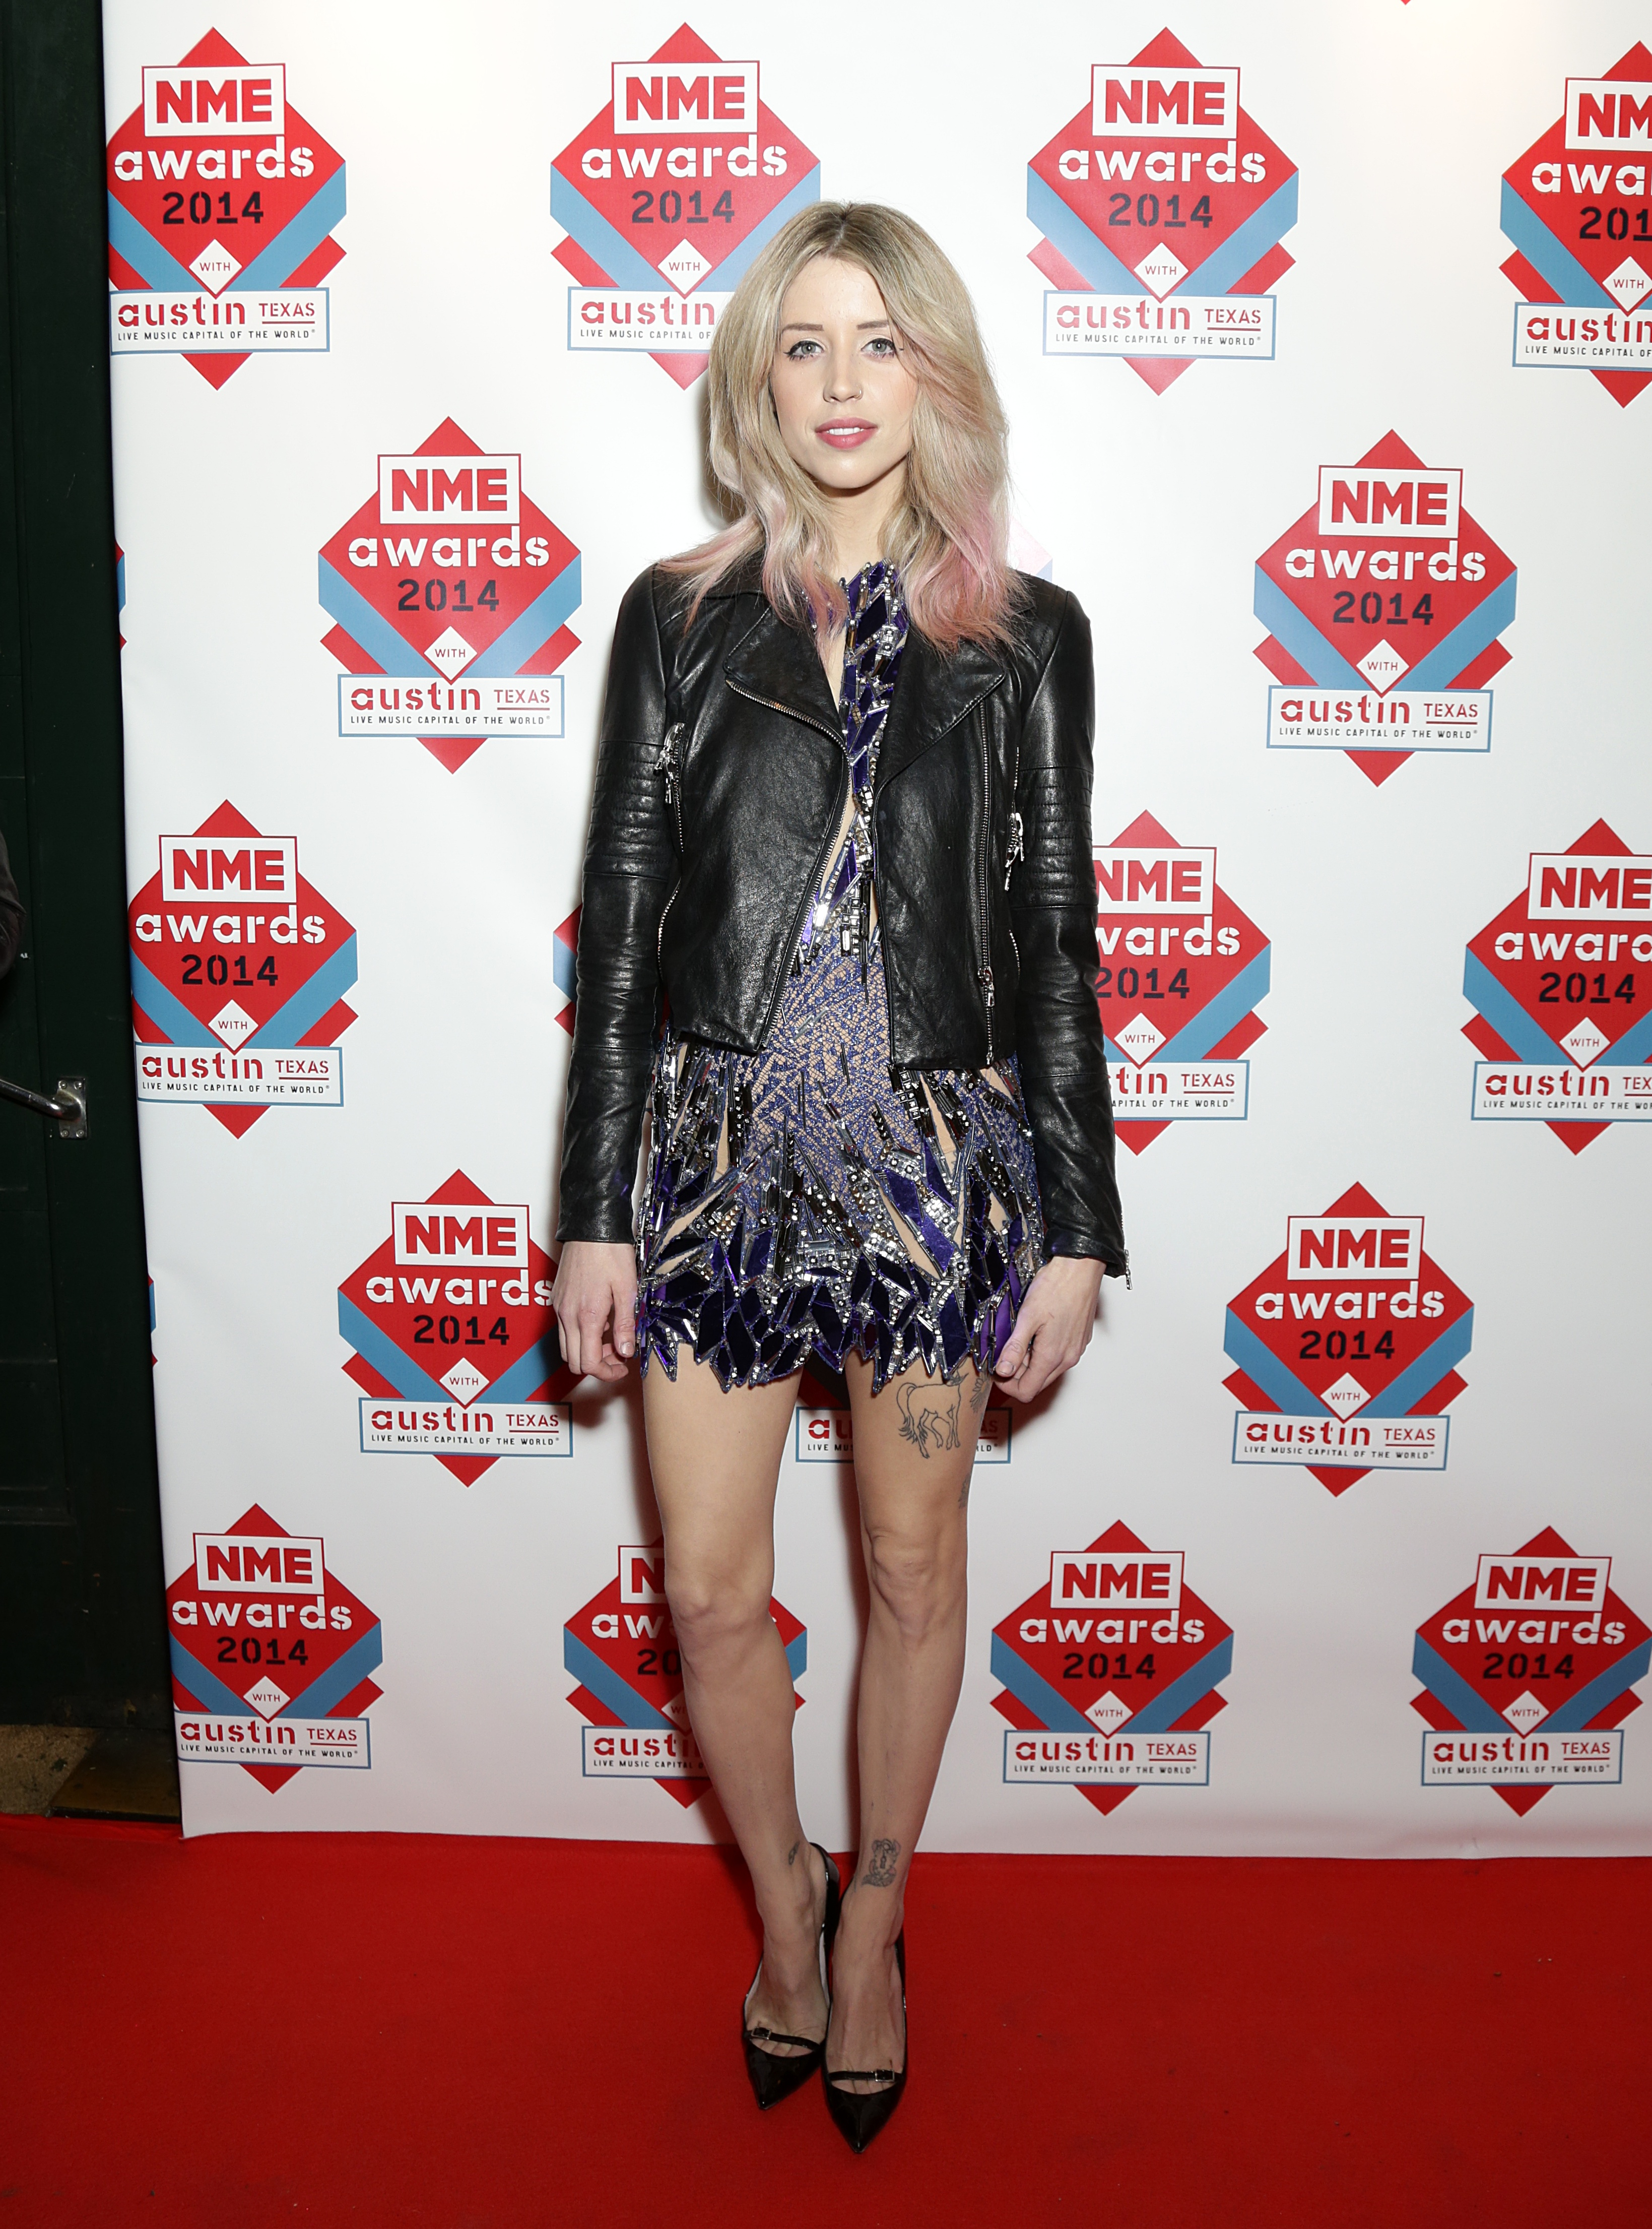 Police admit 'evidence of drugs' was found in Peaches Geldof's home